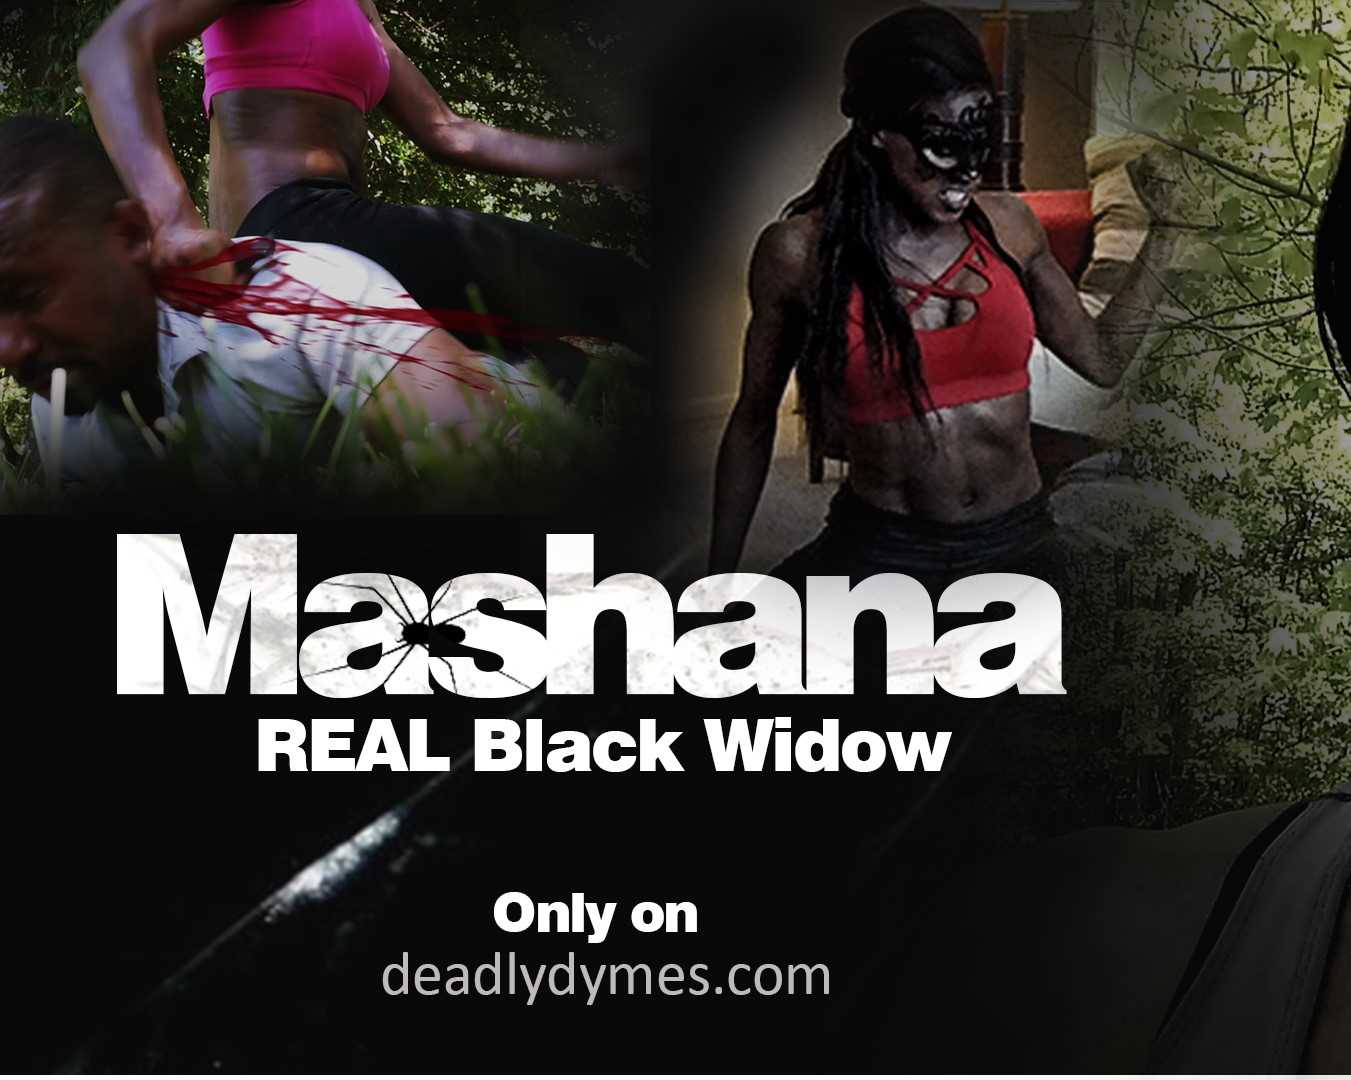 Mashana: Real Black Widow